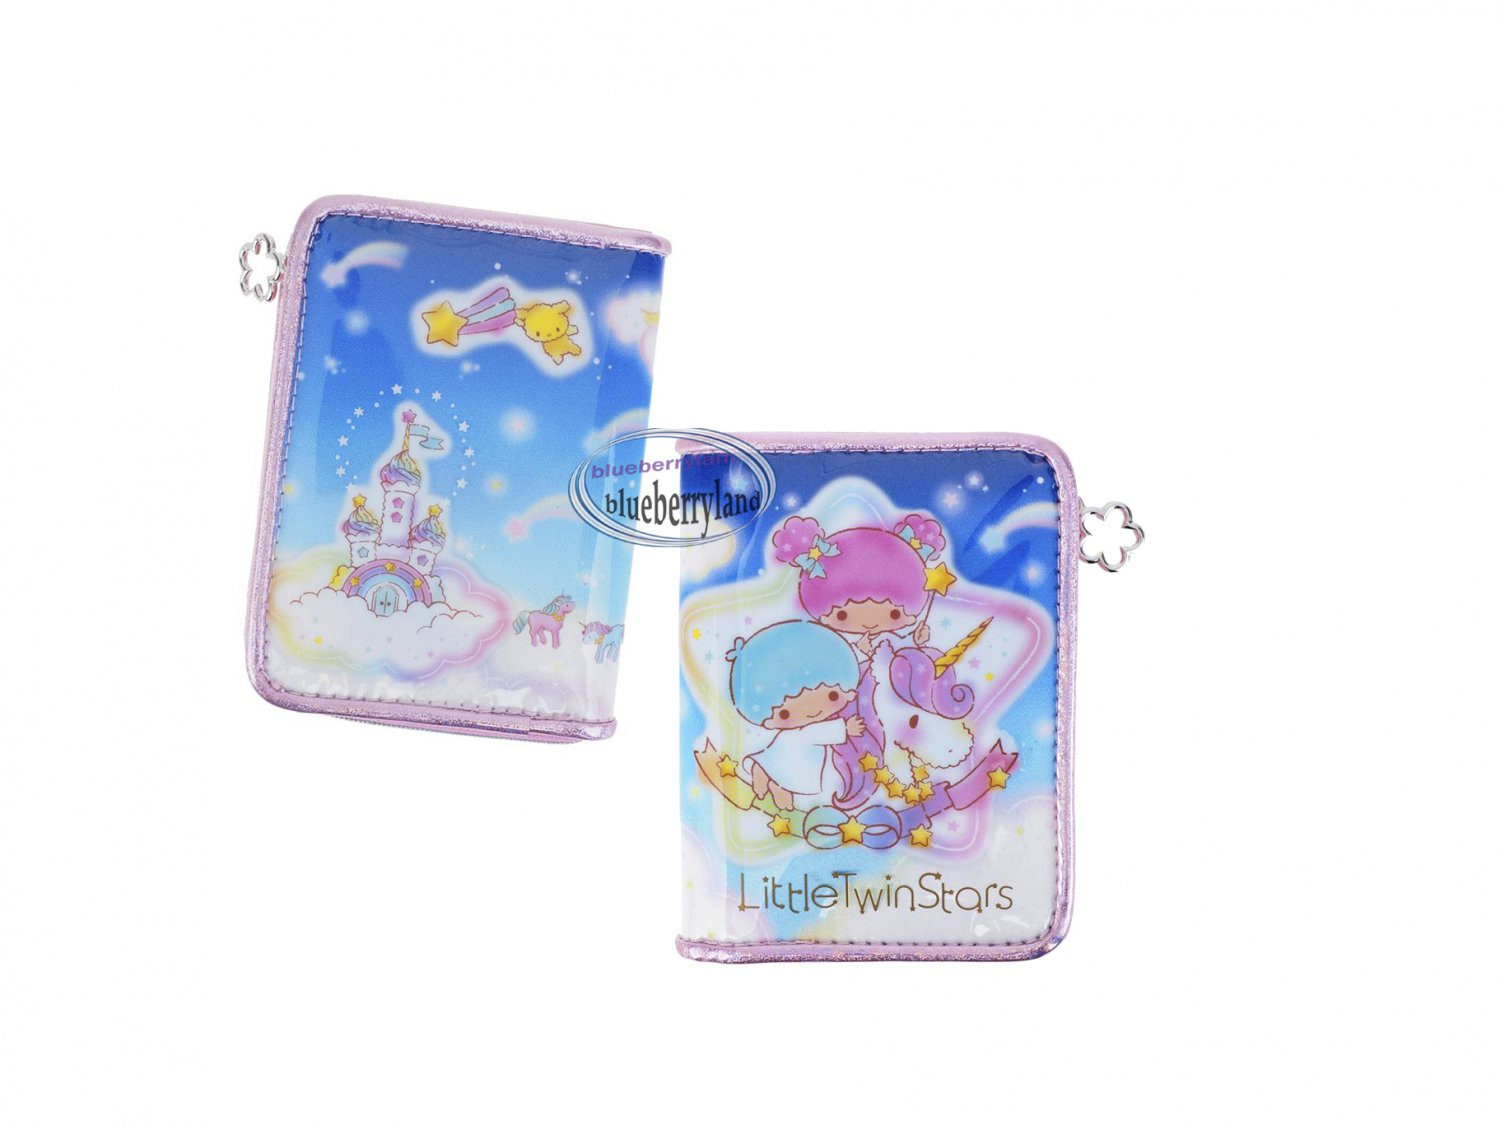 Sanrio Little Twin Stars Bifold Wallet PVC Laminated coin notes purse bag pouch